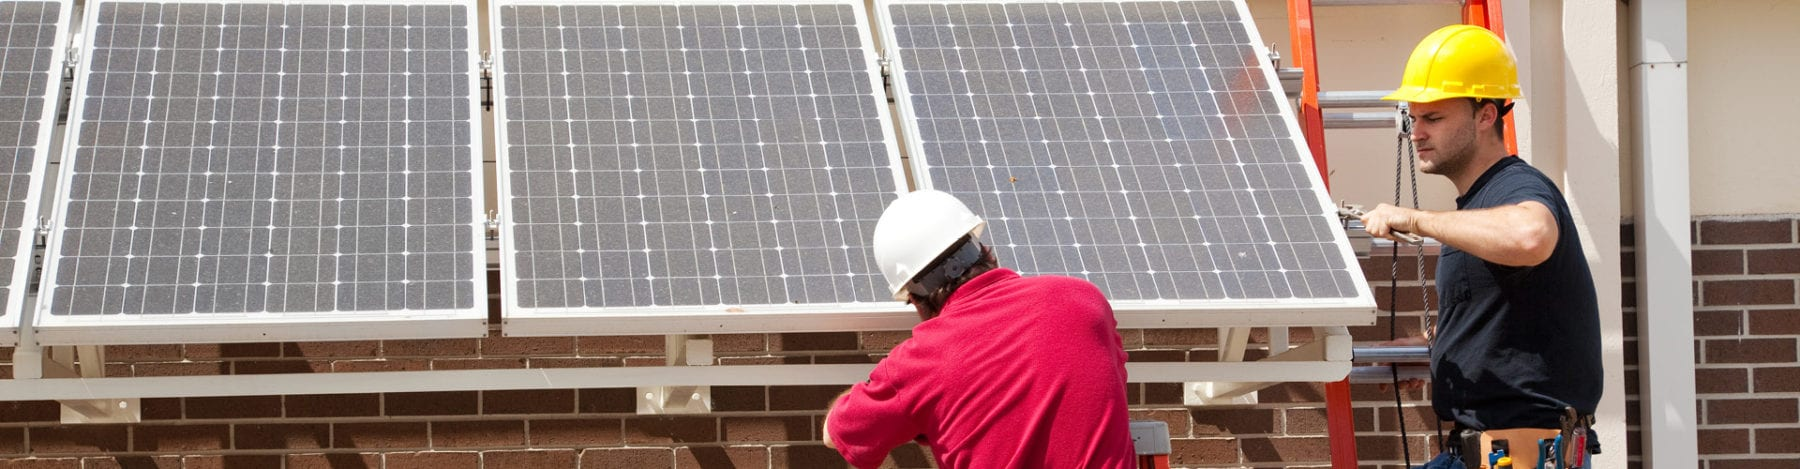 Two SunState Solar techs providing professional commercial solar energy systems installation services.